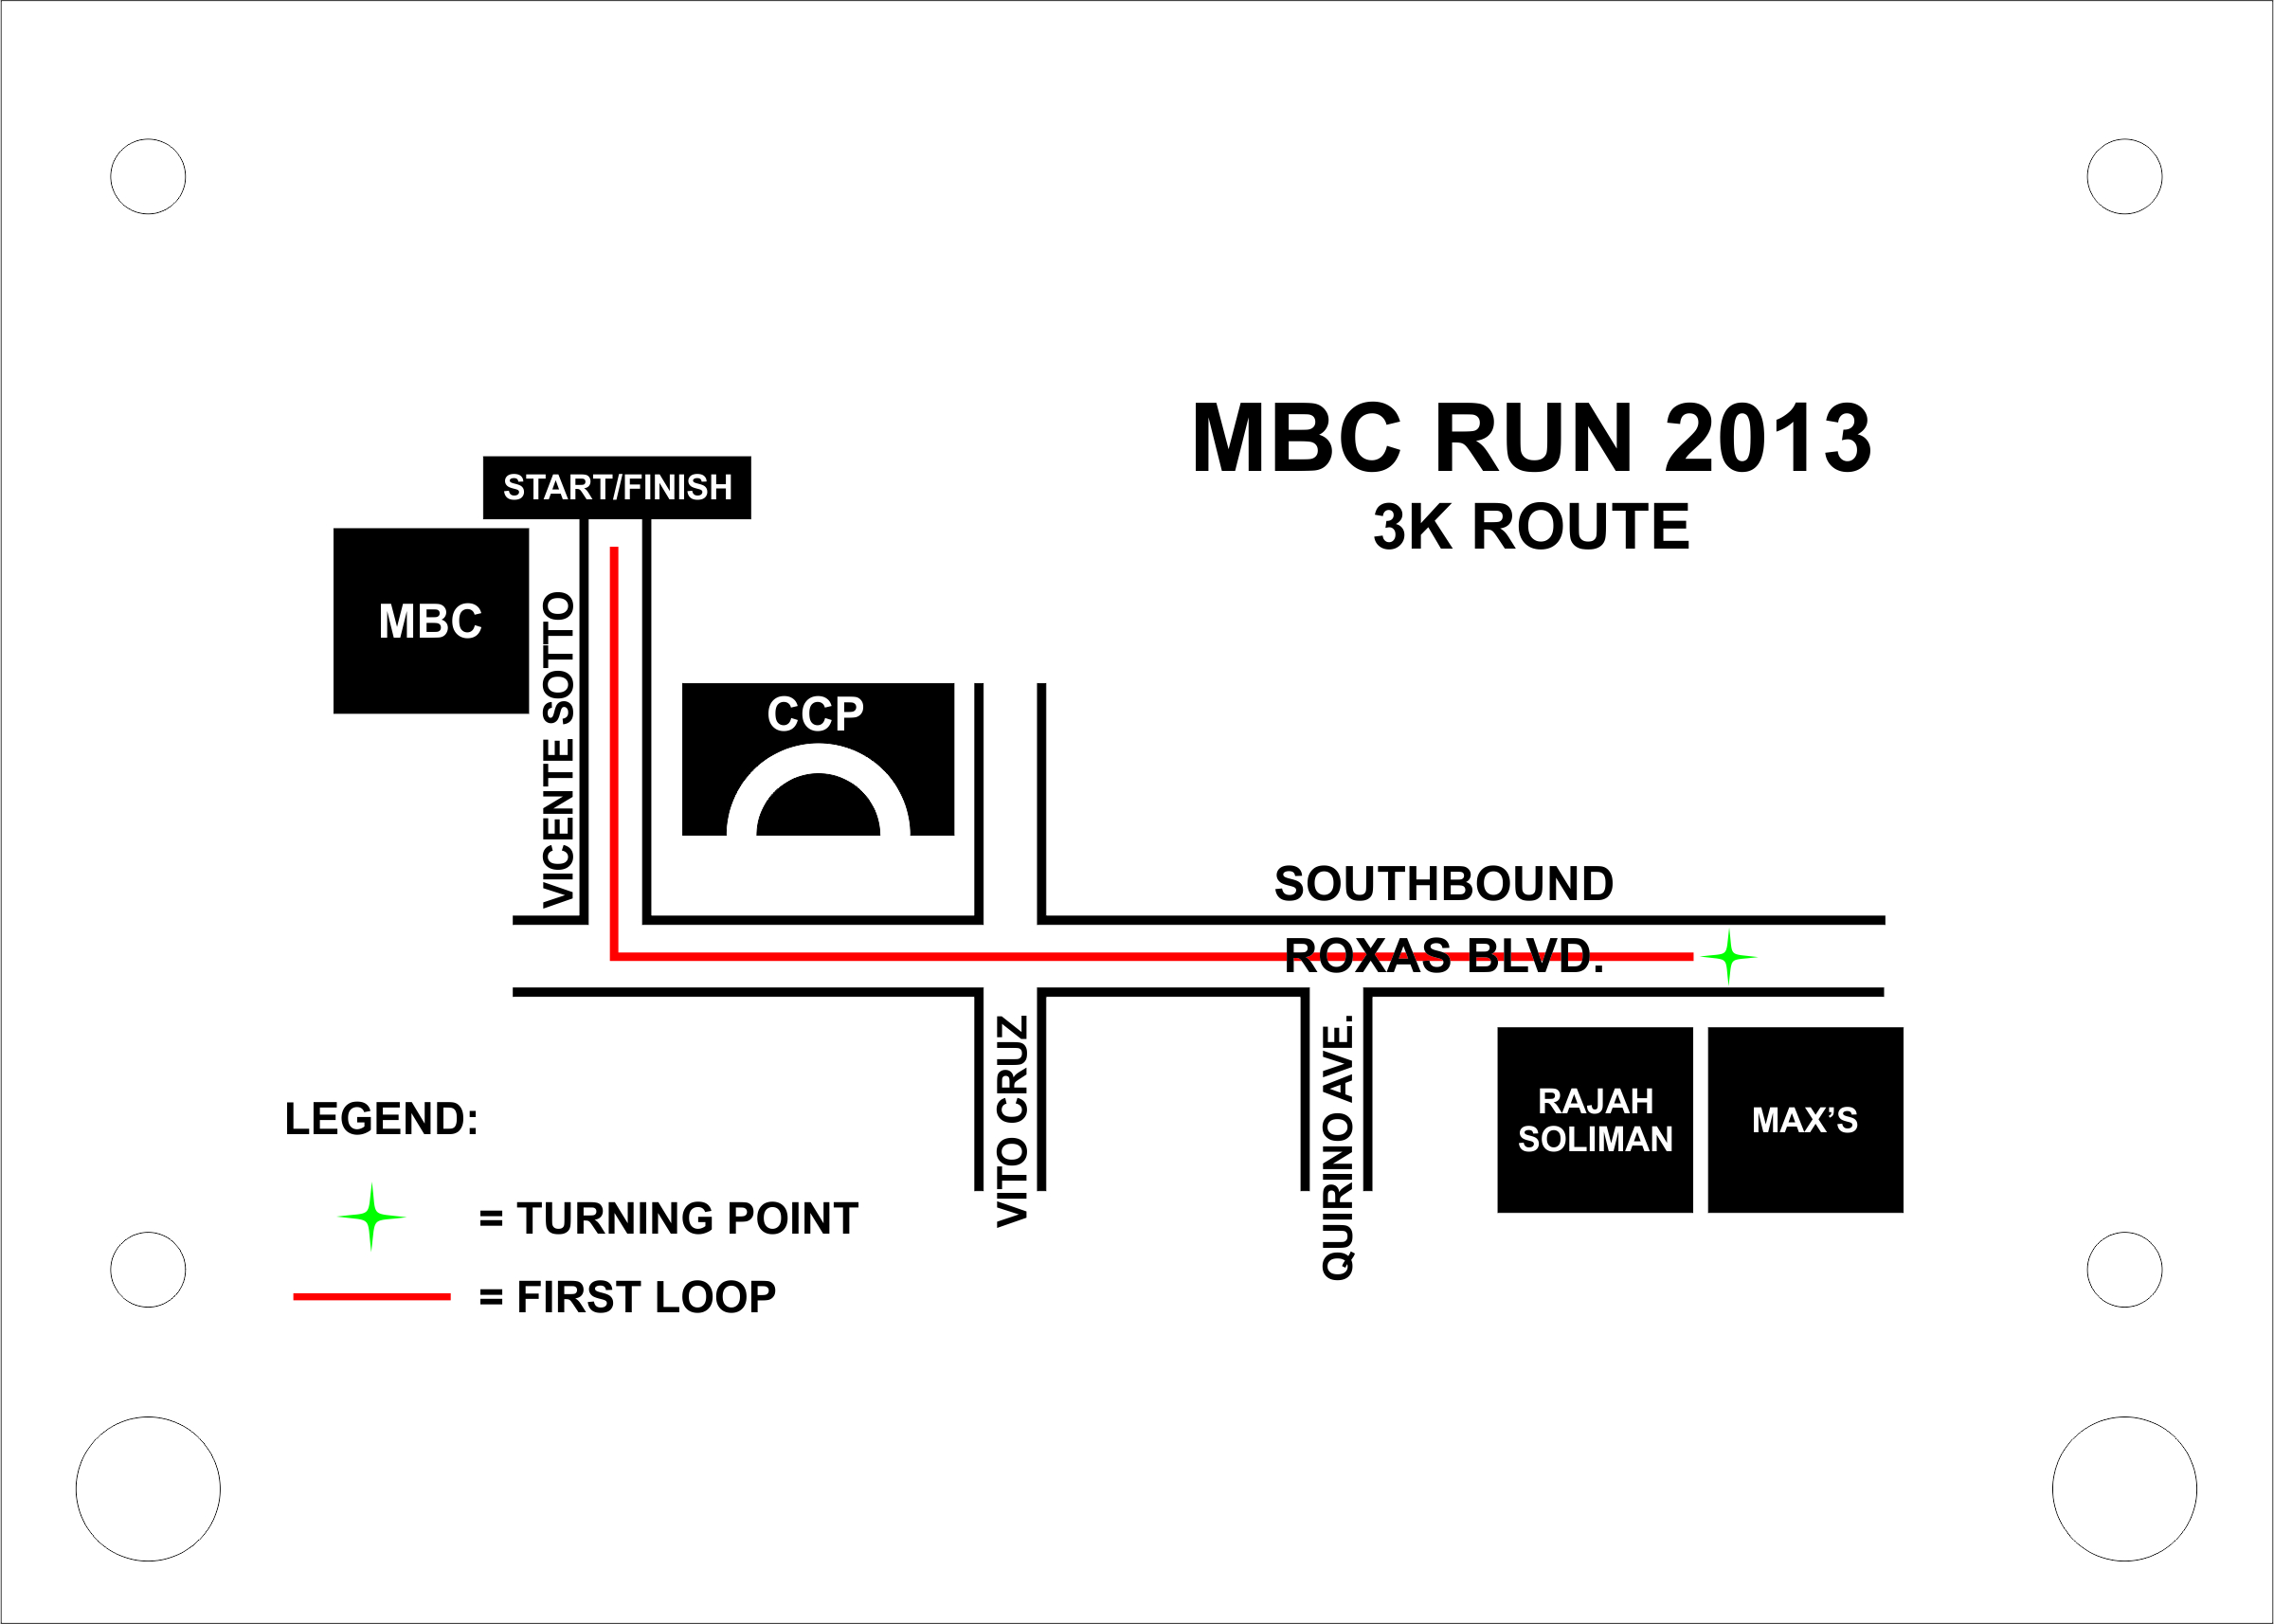 manila-bay-clean-up-run-2013-route-map-3k